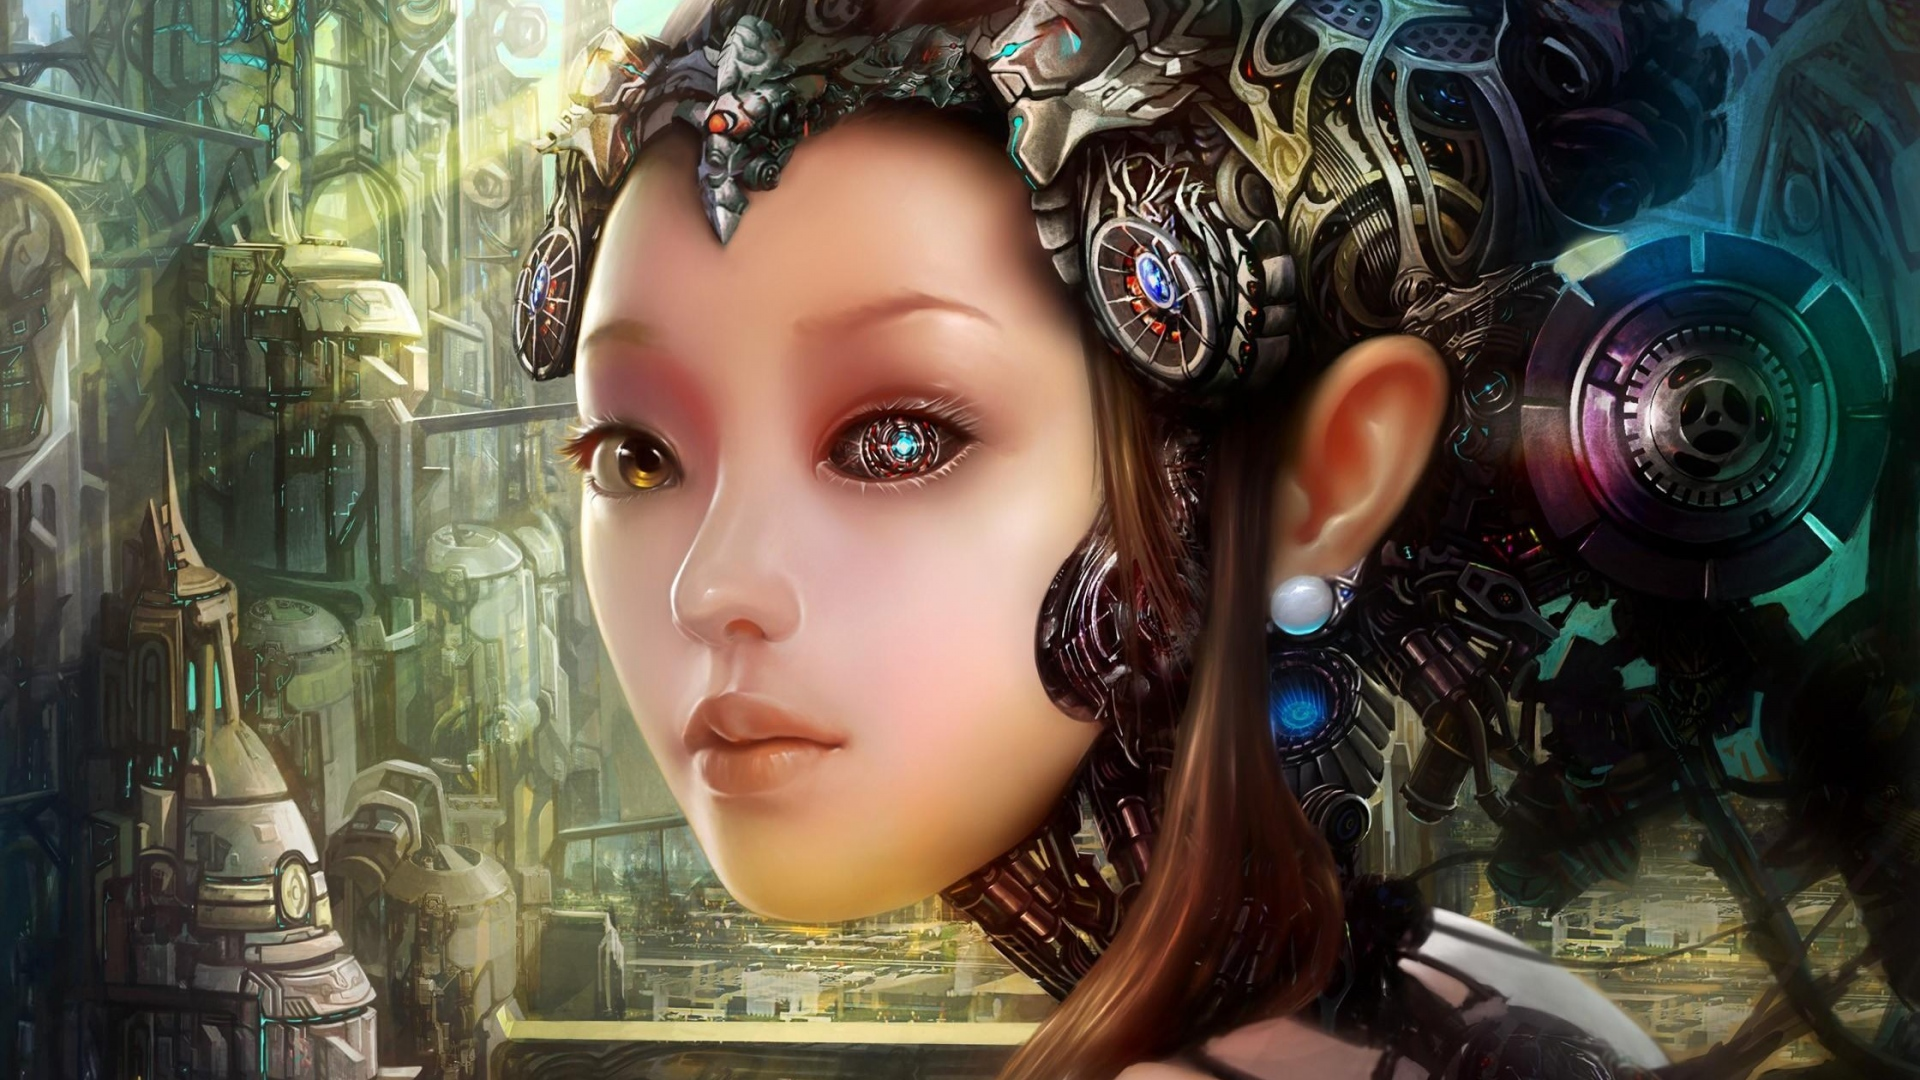 girl-robot-cyborg-city-1920x1080